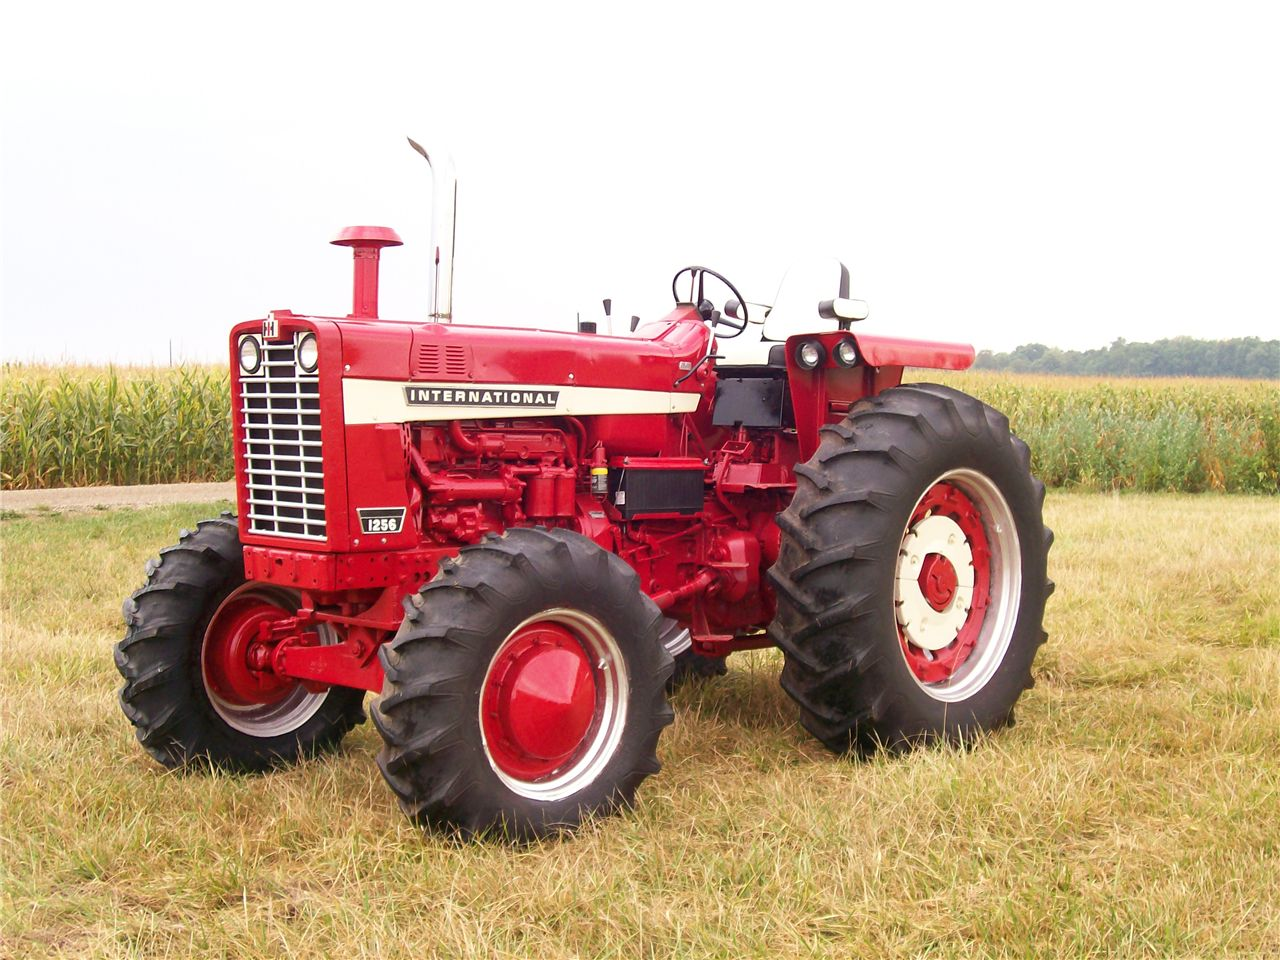 Farm Tractors For Sale Classified Ads - Yesterday's Tractor Co.